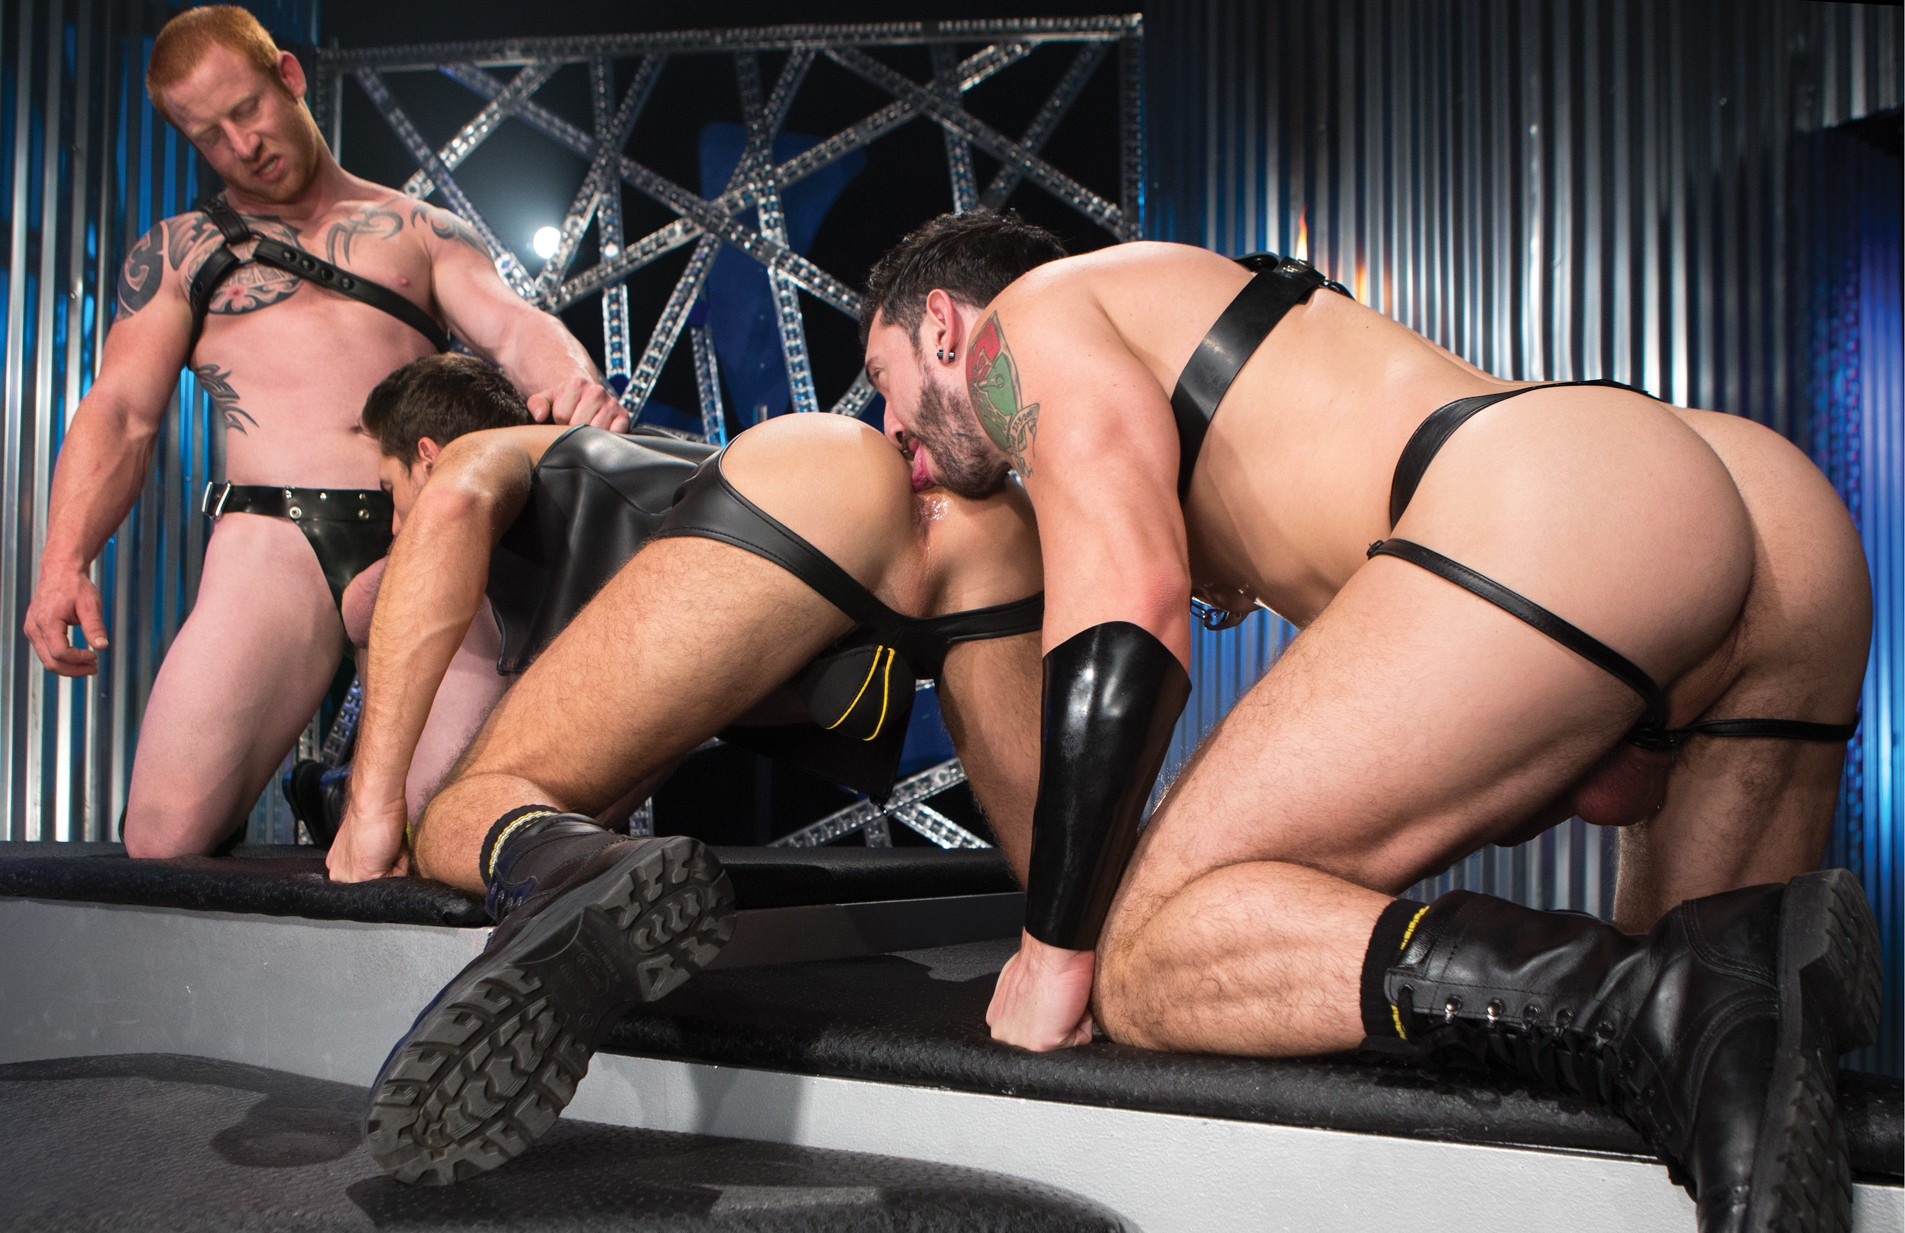 Hot House Leather: Submissive